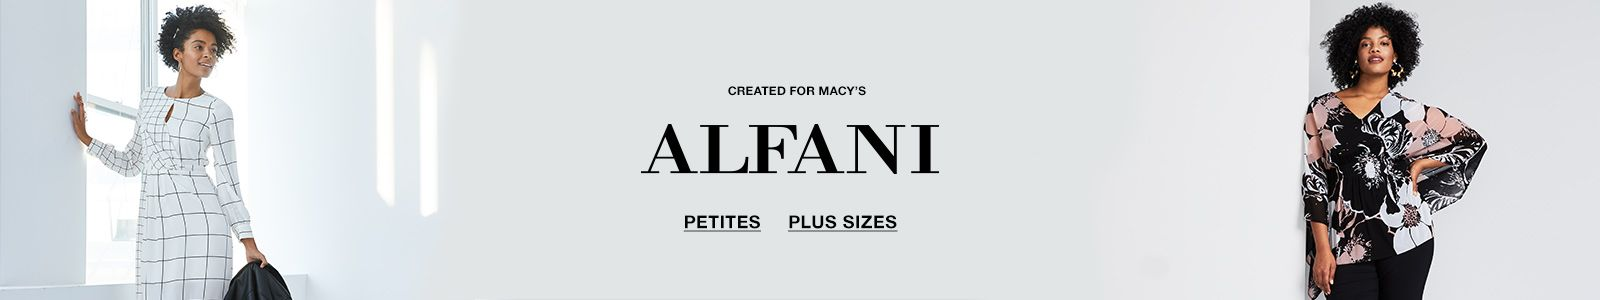 Created for Macy's Alfani, Petites, Plus Sizes